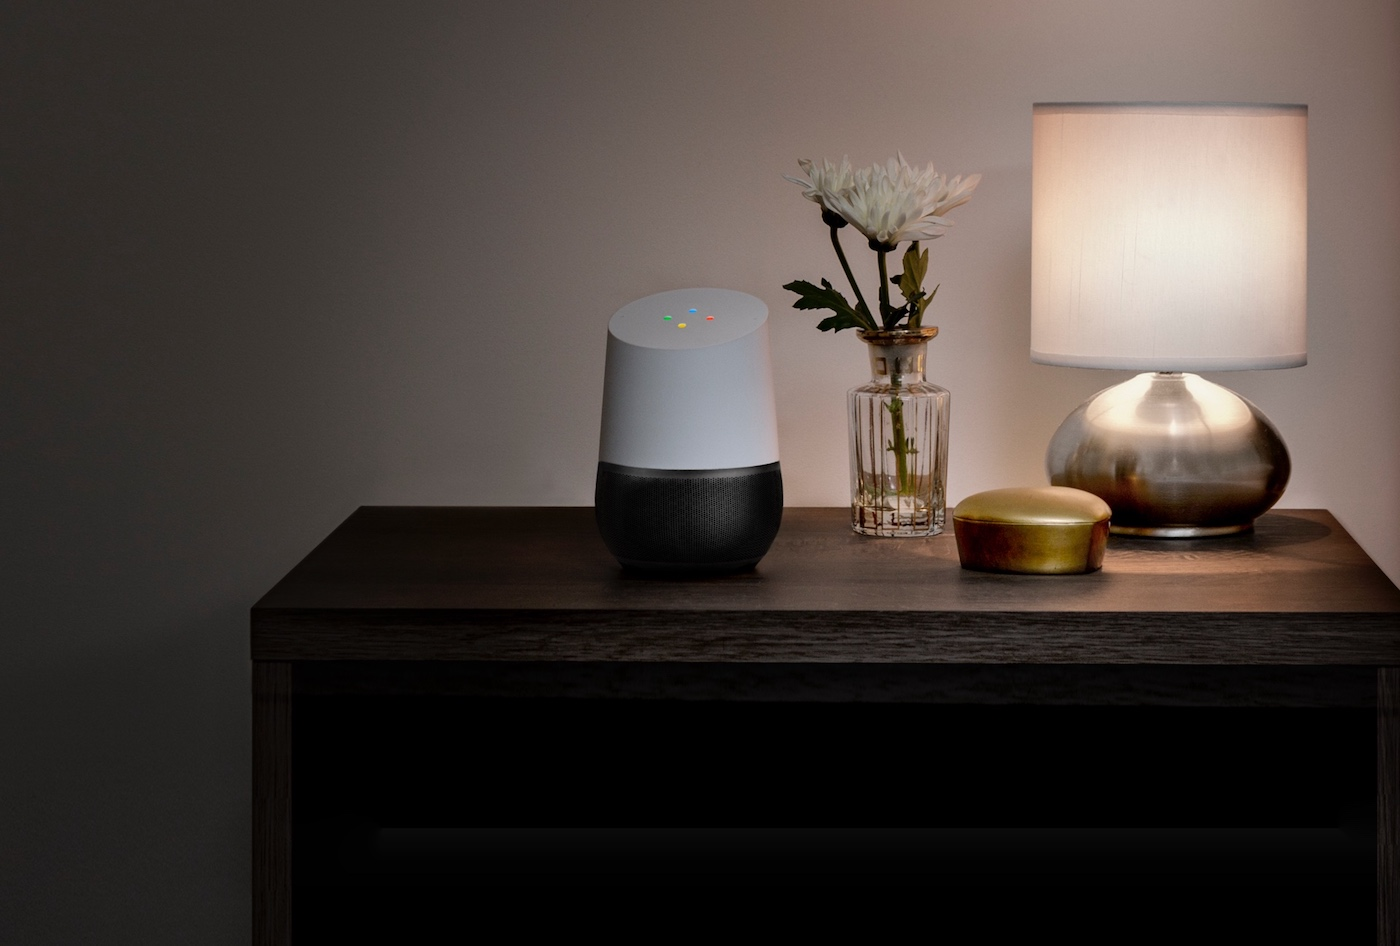 Google Home will take on Alexa to be your at-home assistant